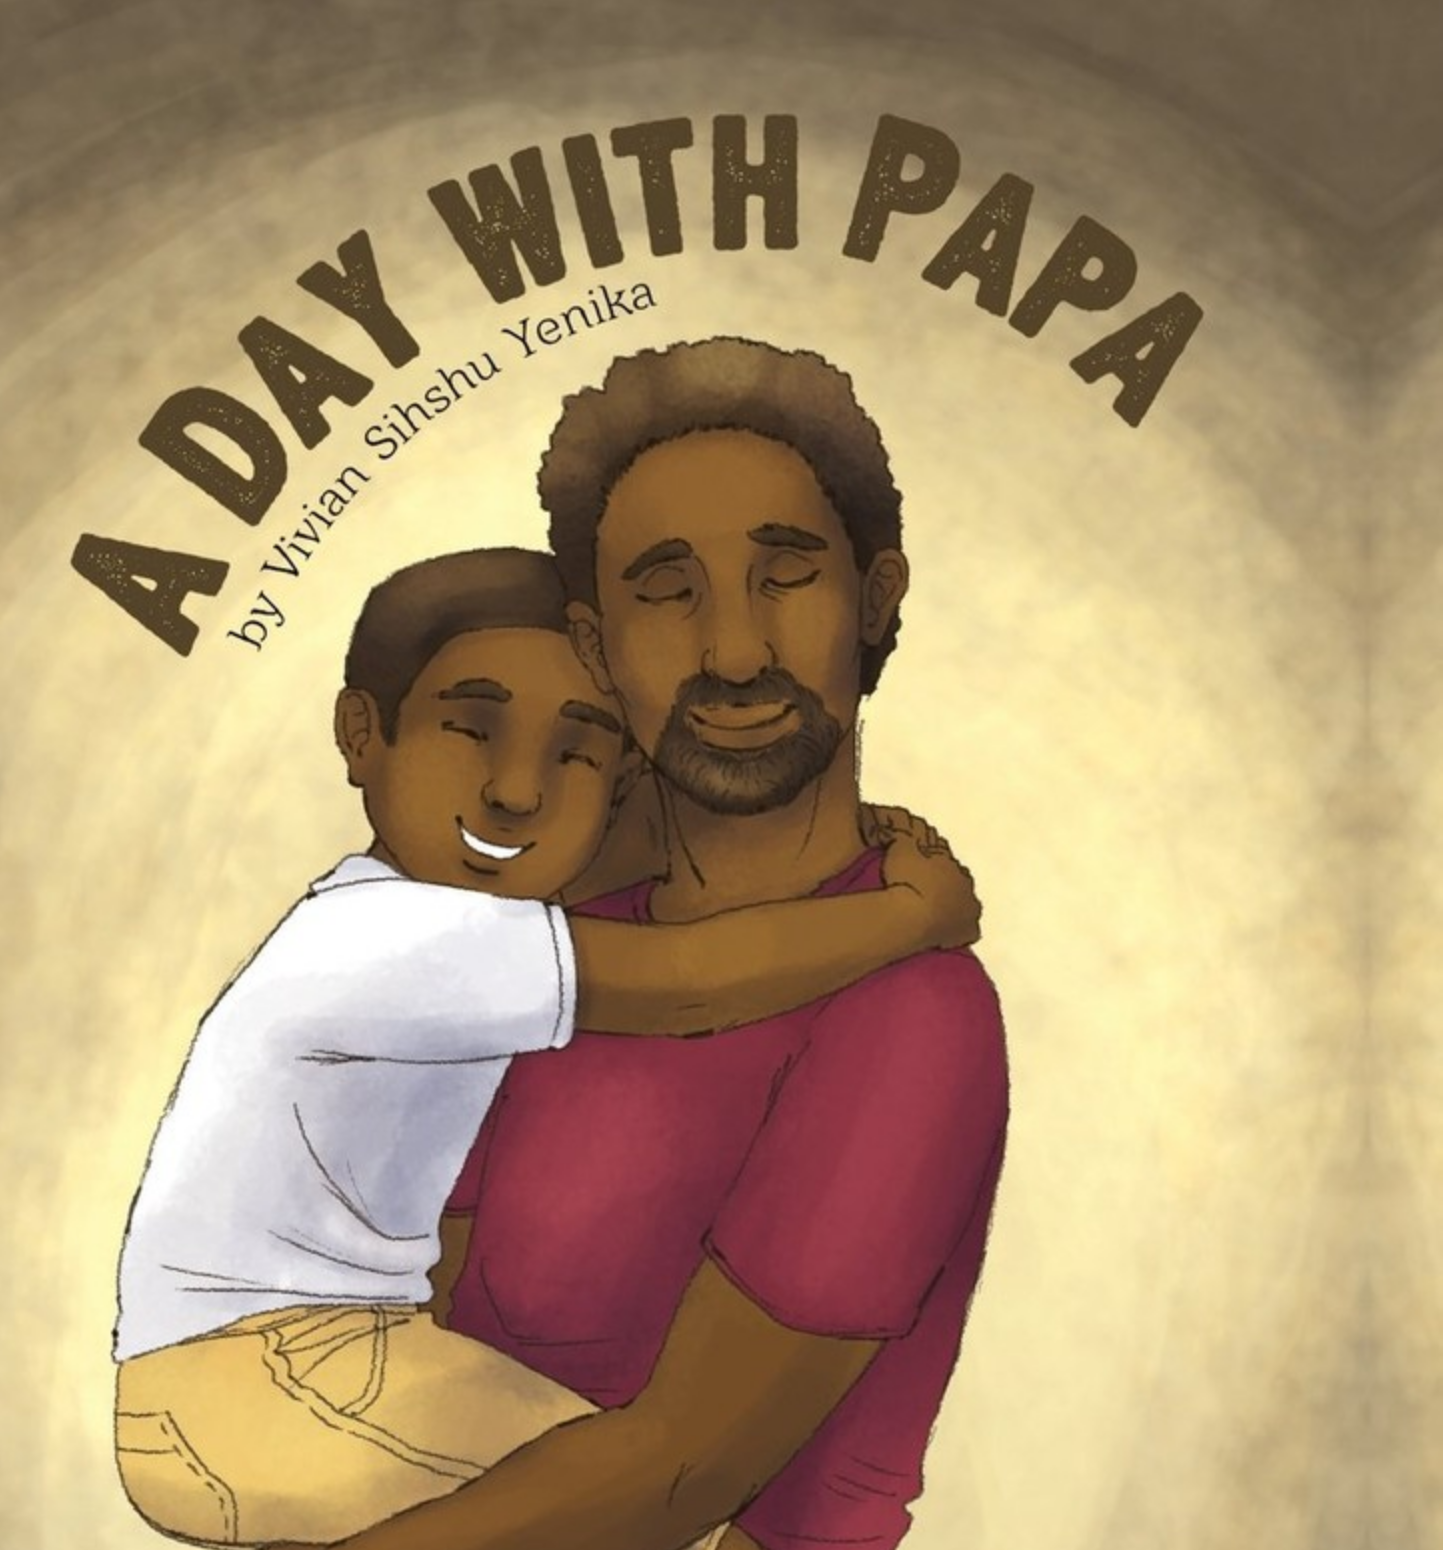 Cover image for A Day with Papa